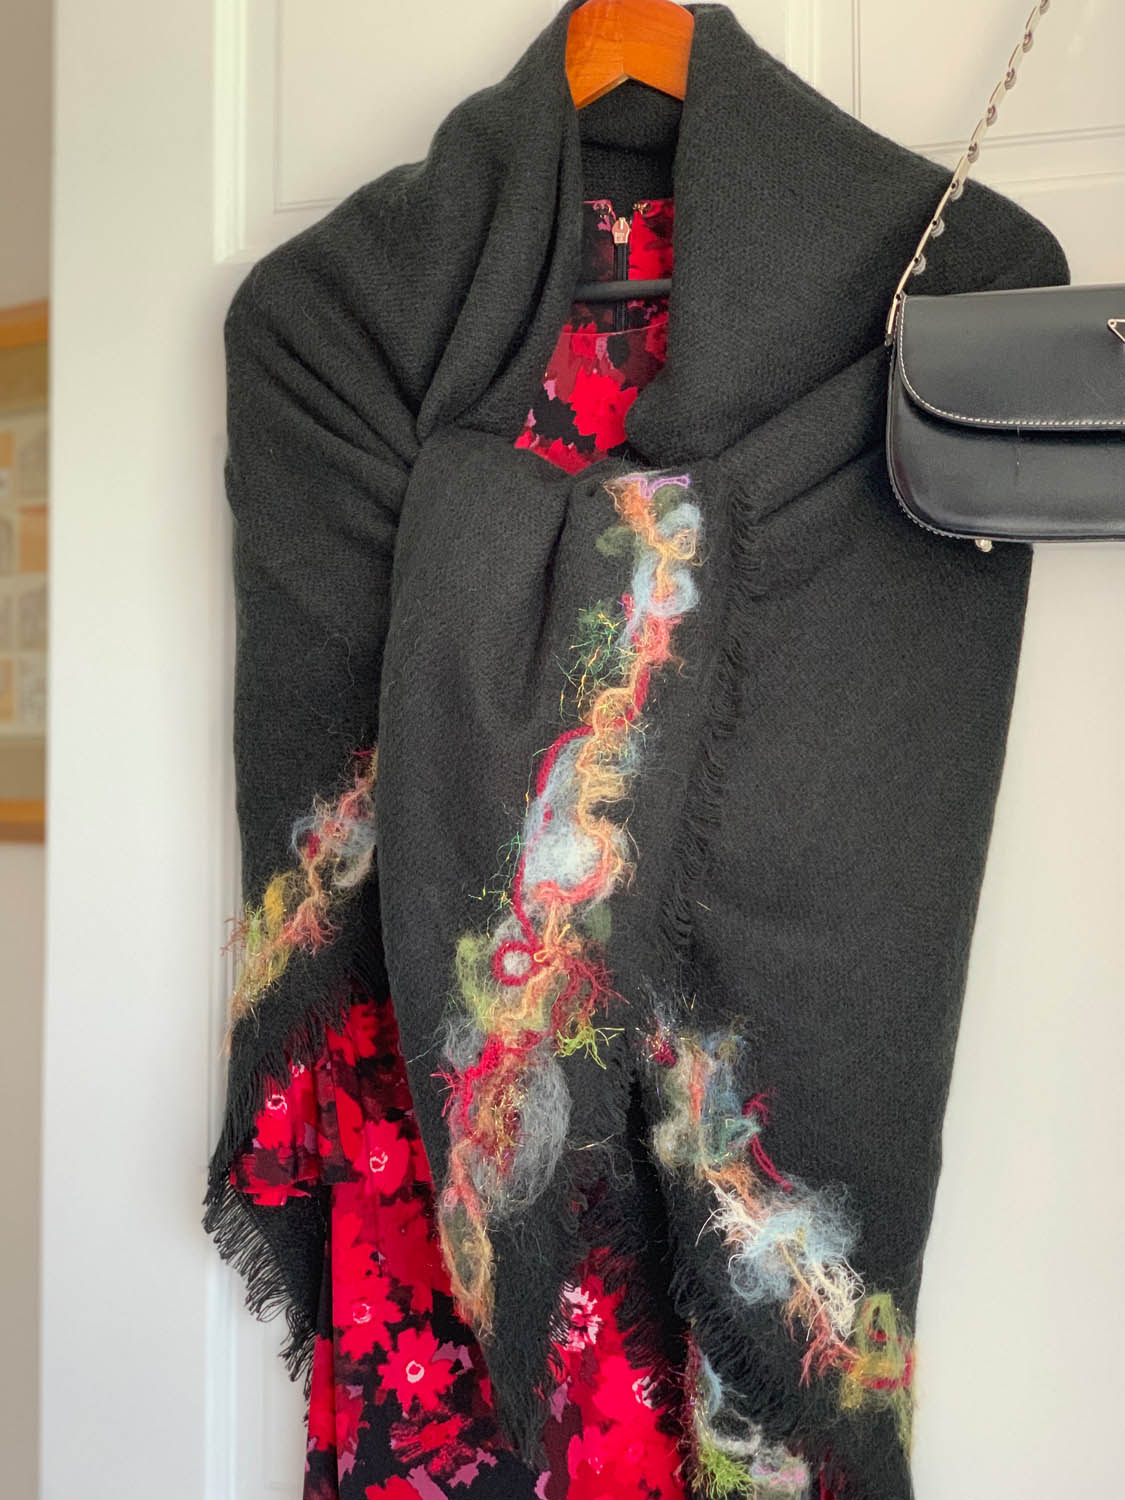 Needle felted fibers embellishing the border of a pre-made shawl wrap over a dress hanging on a door